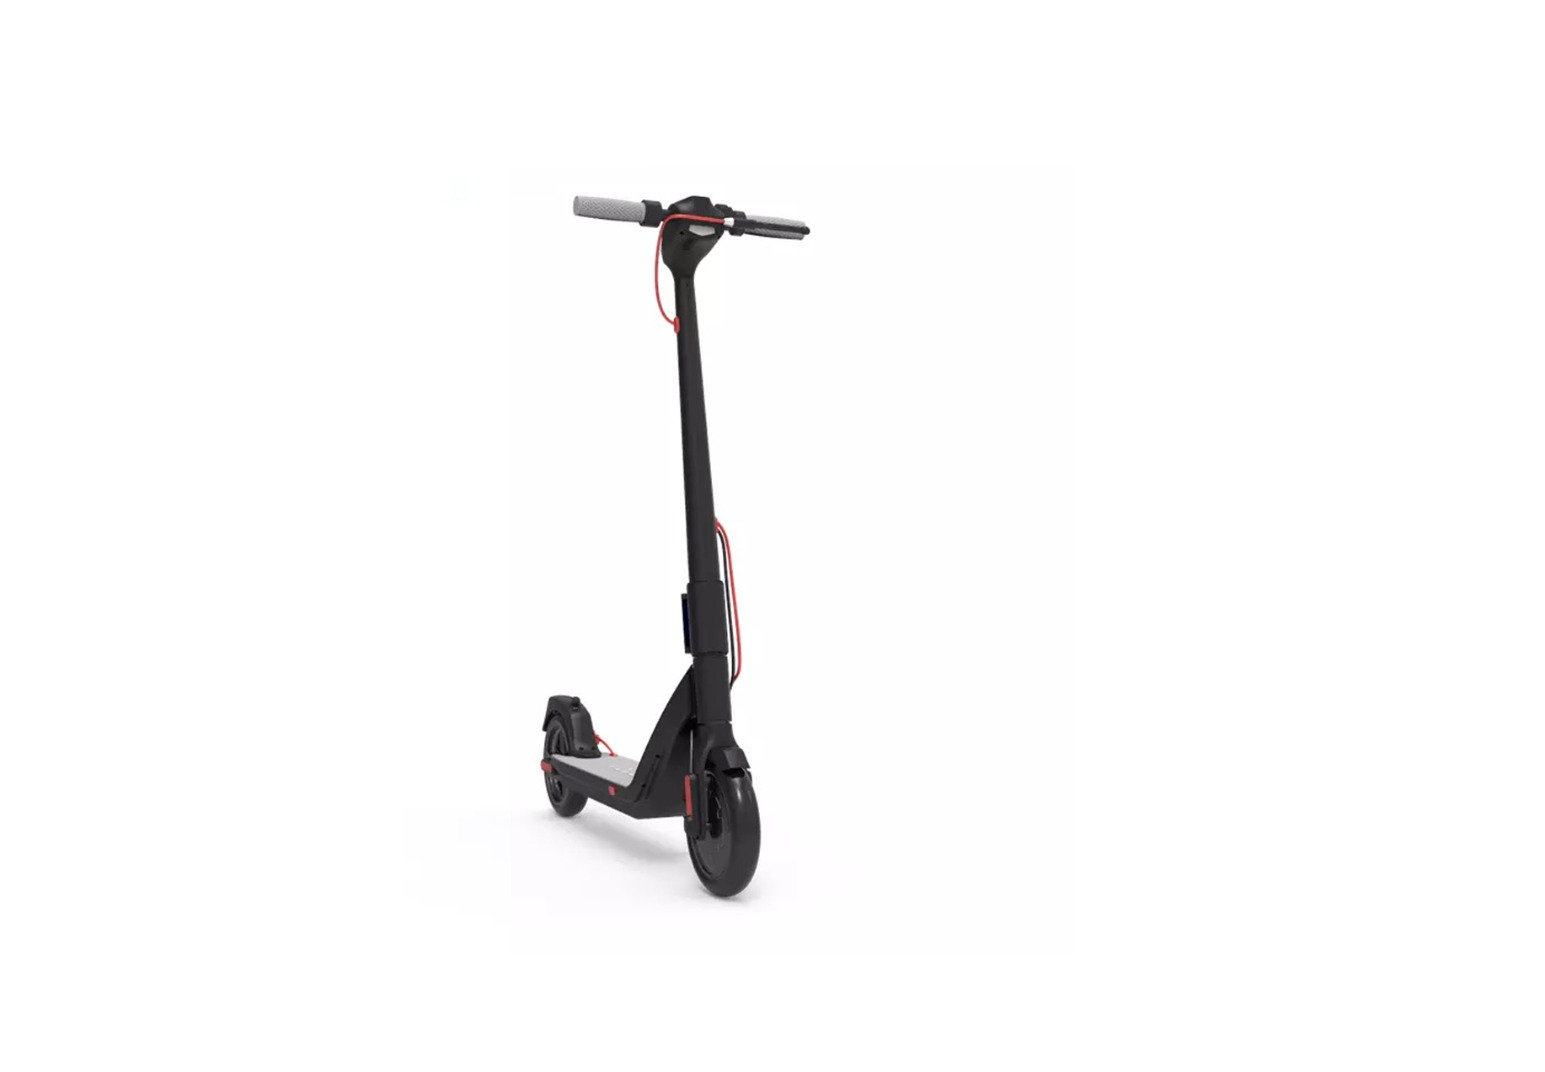 ELECTRIC SCOOTER 1 HOUR RENTAL